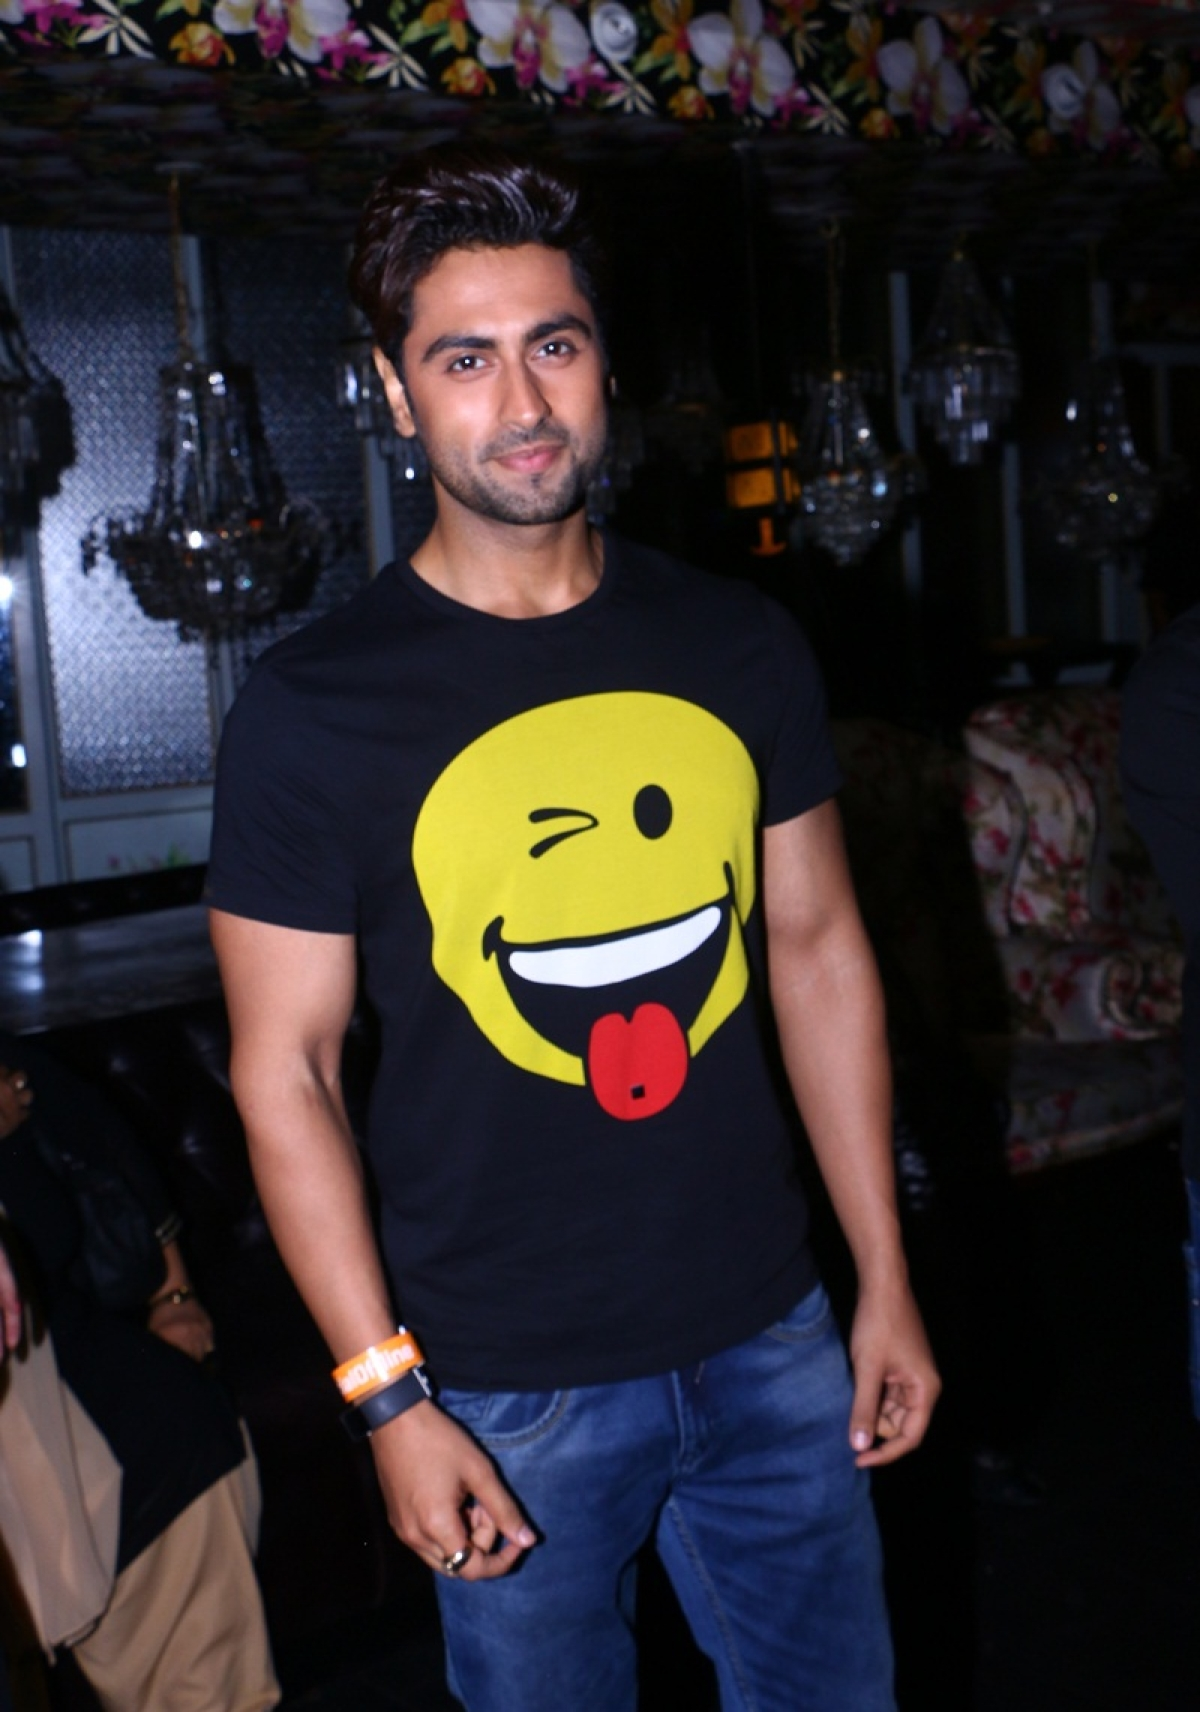 In Pictures: Moh Moh Ke Dhage launch Party in Mumbai!